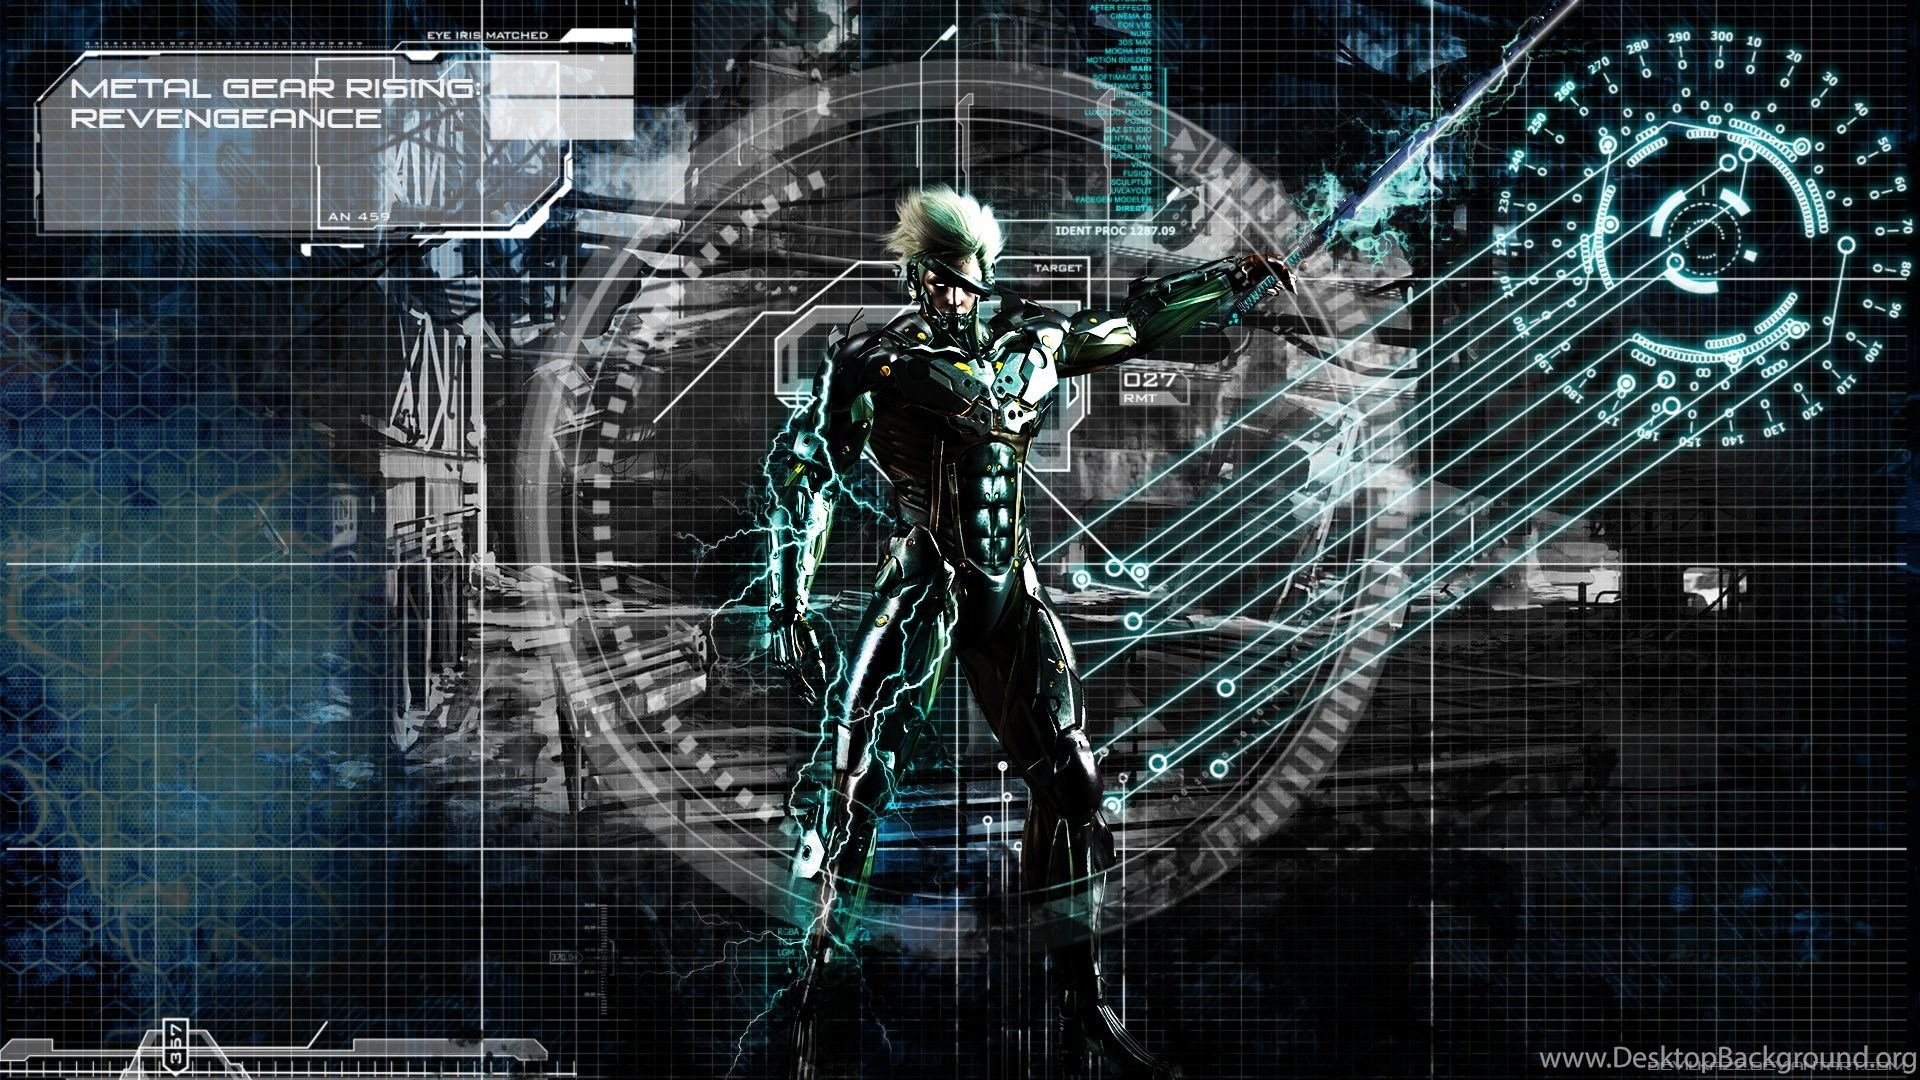 Metal gear rising wallpapers wallpapers metal gear rising sci fi warrior weapons sword wallpapers voltagebd